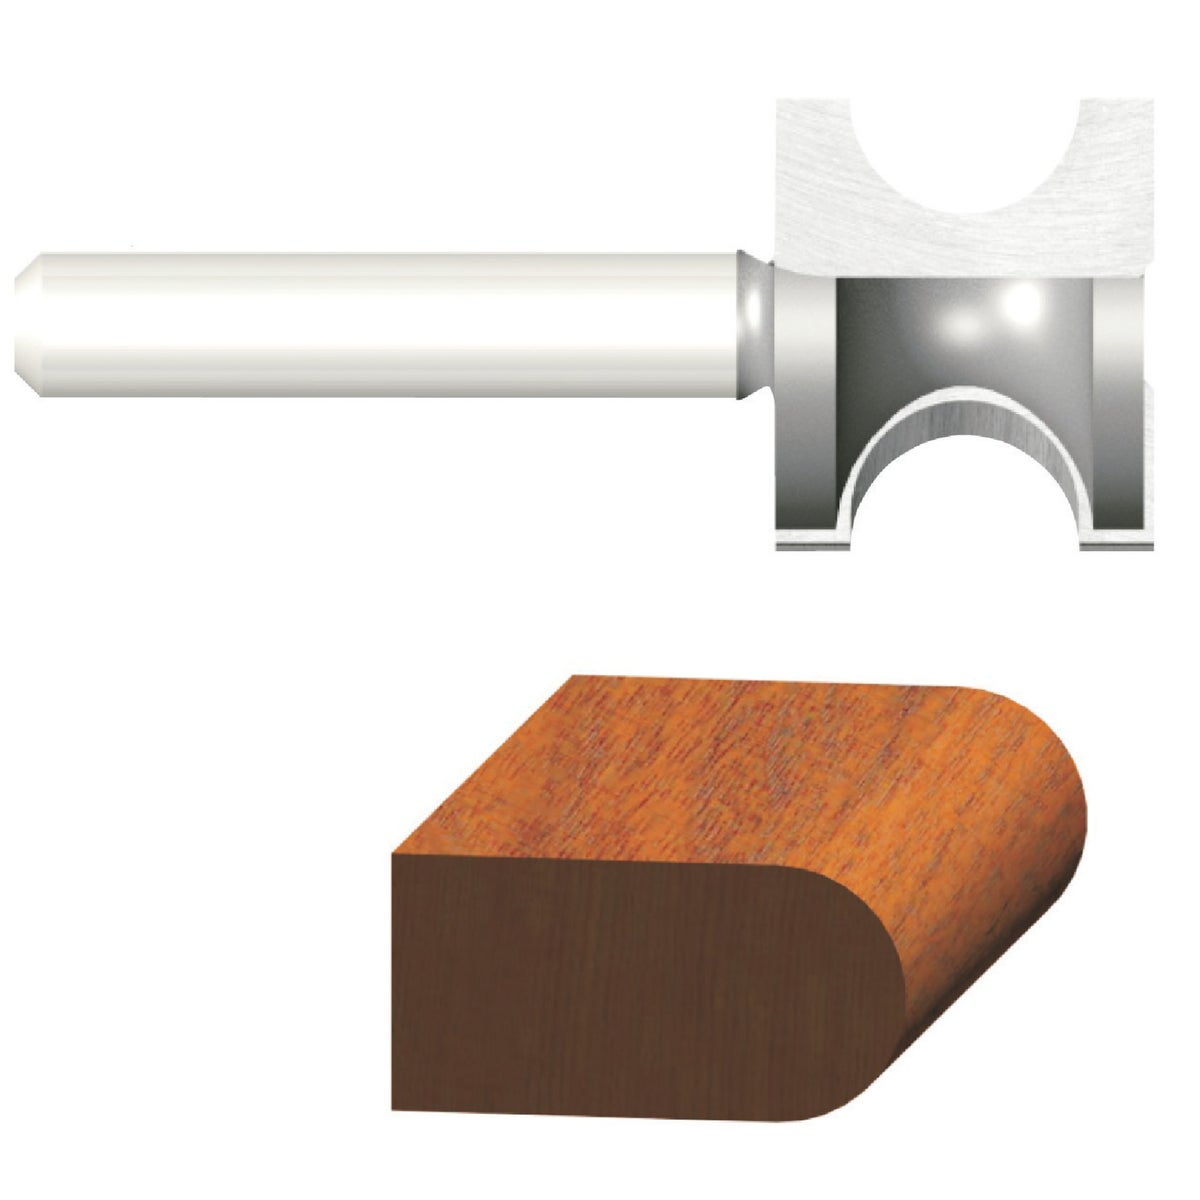 """1/8"""" BULL NOSE BIT - 23156 by Vermont American"""